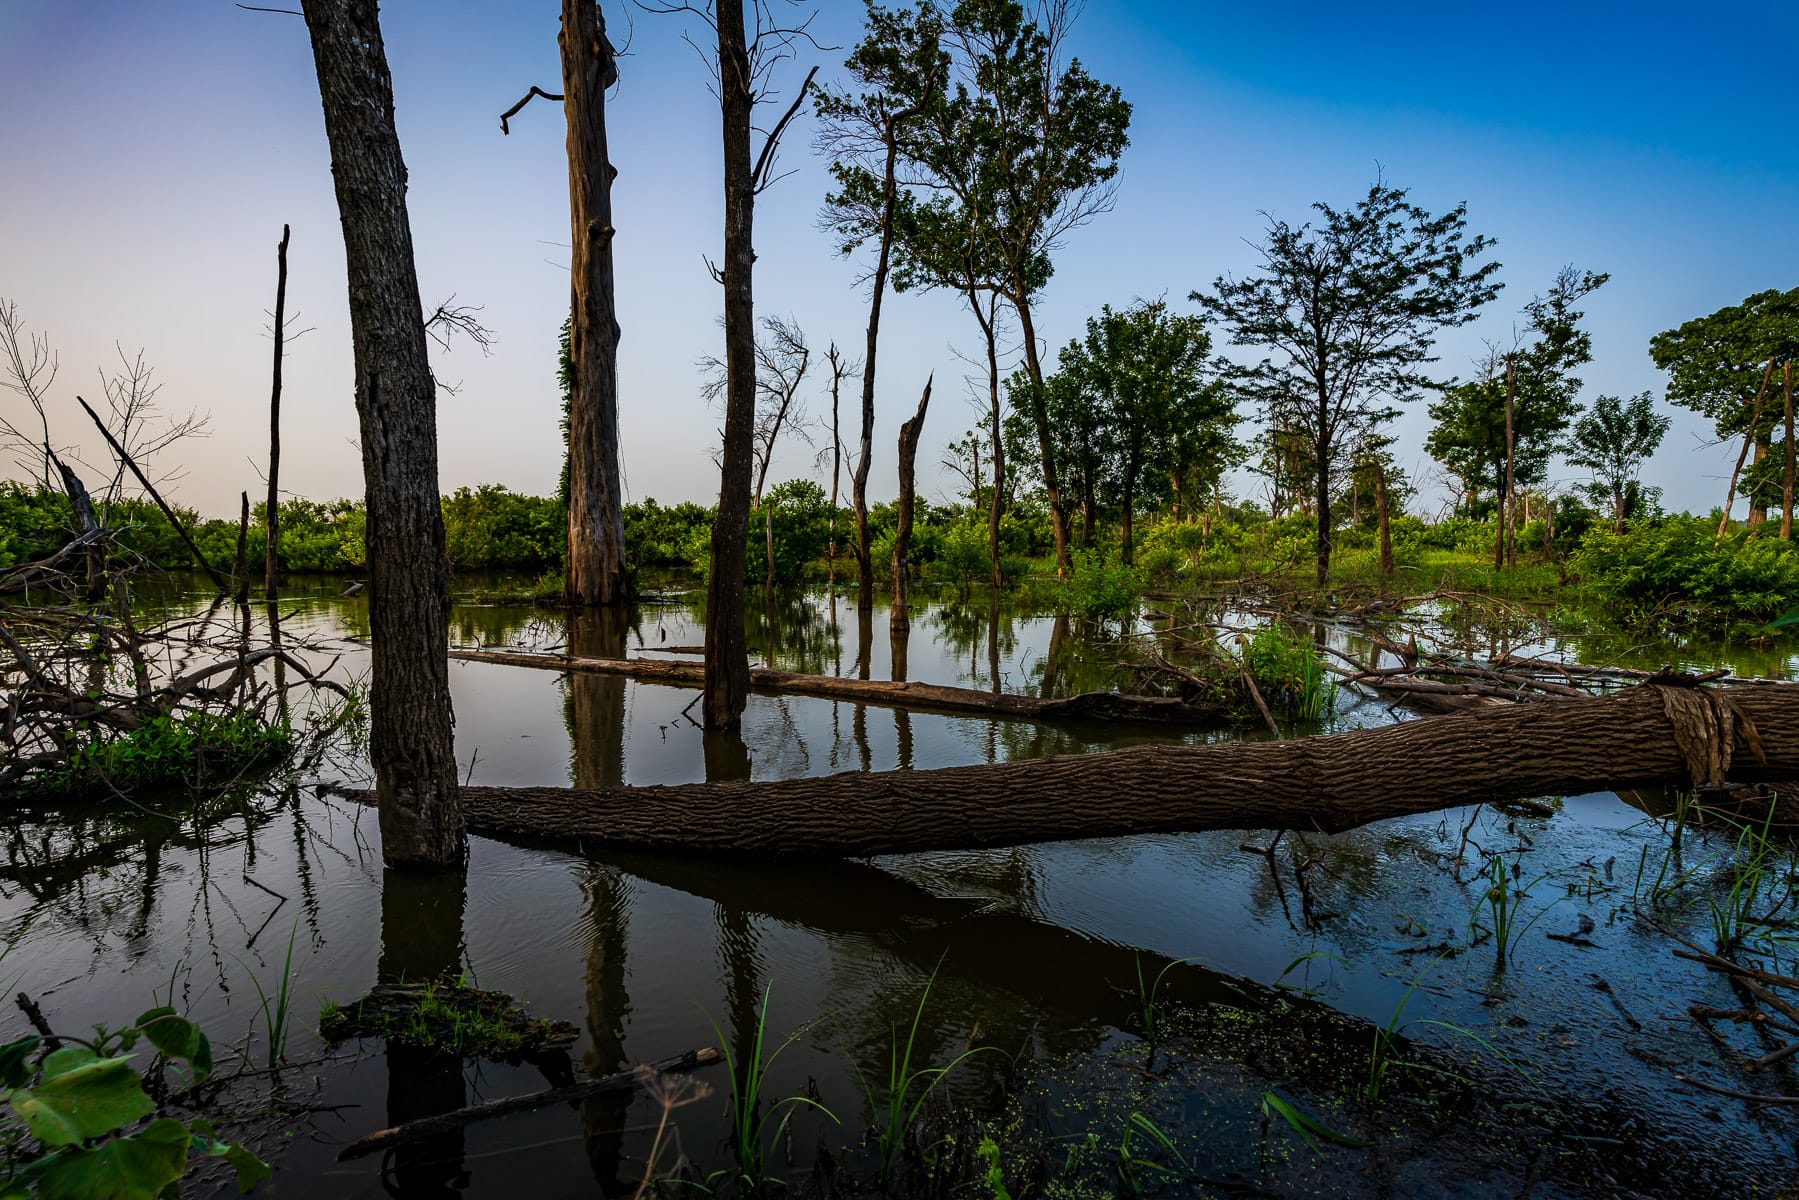 Inundated trees at North Texas' Hagerman National Wildlife Refuge.